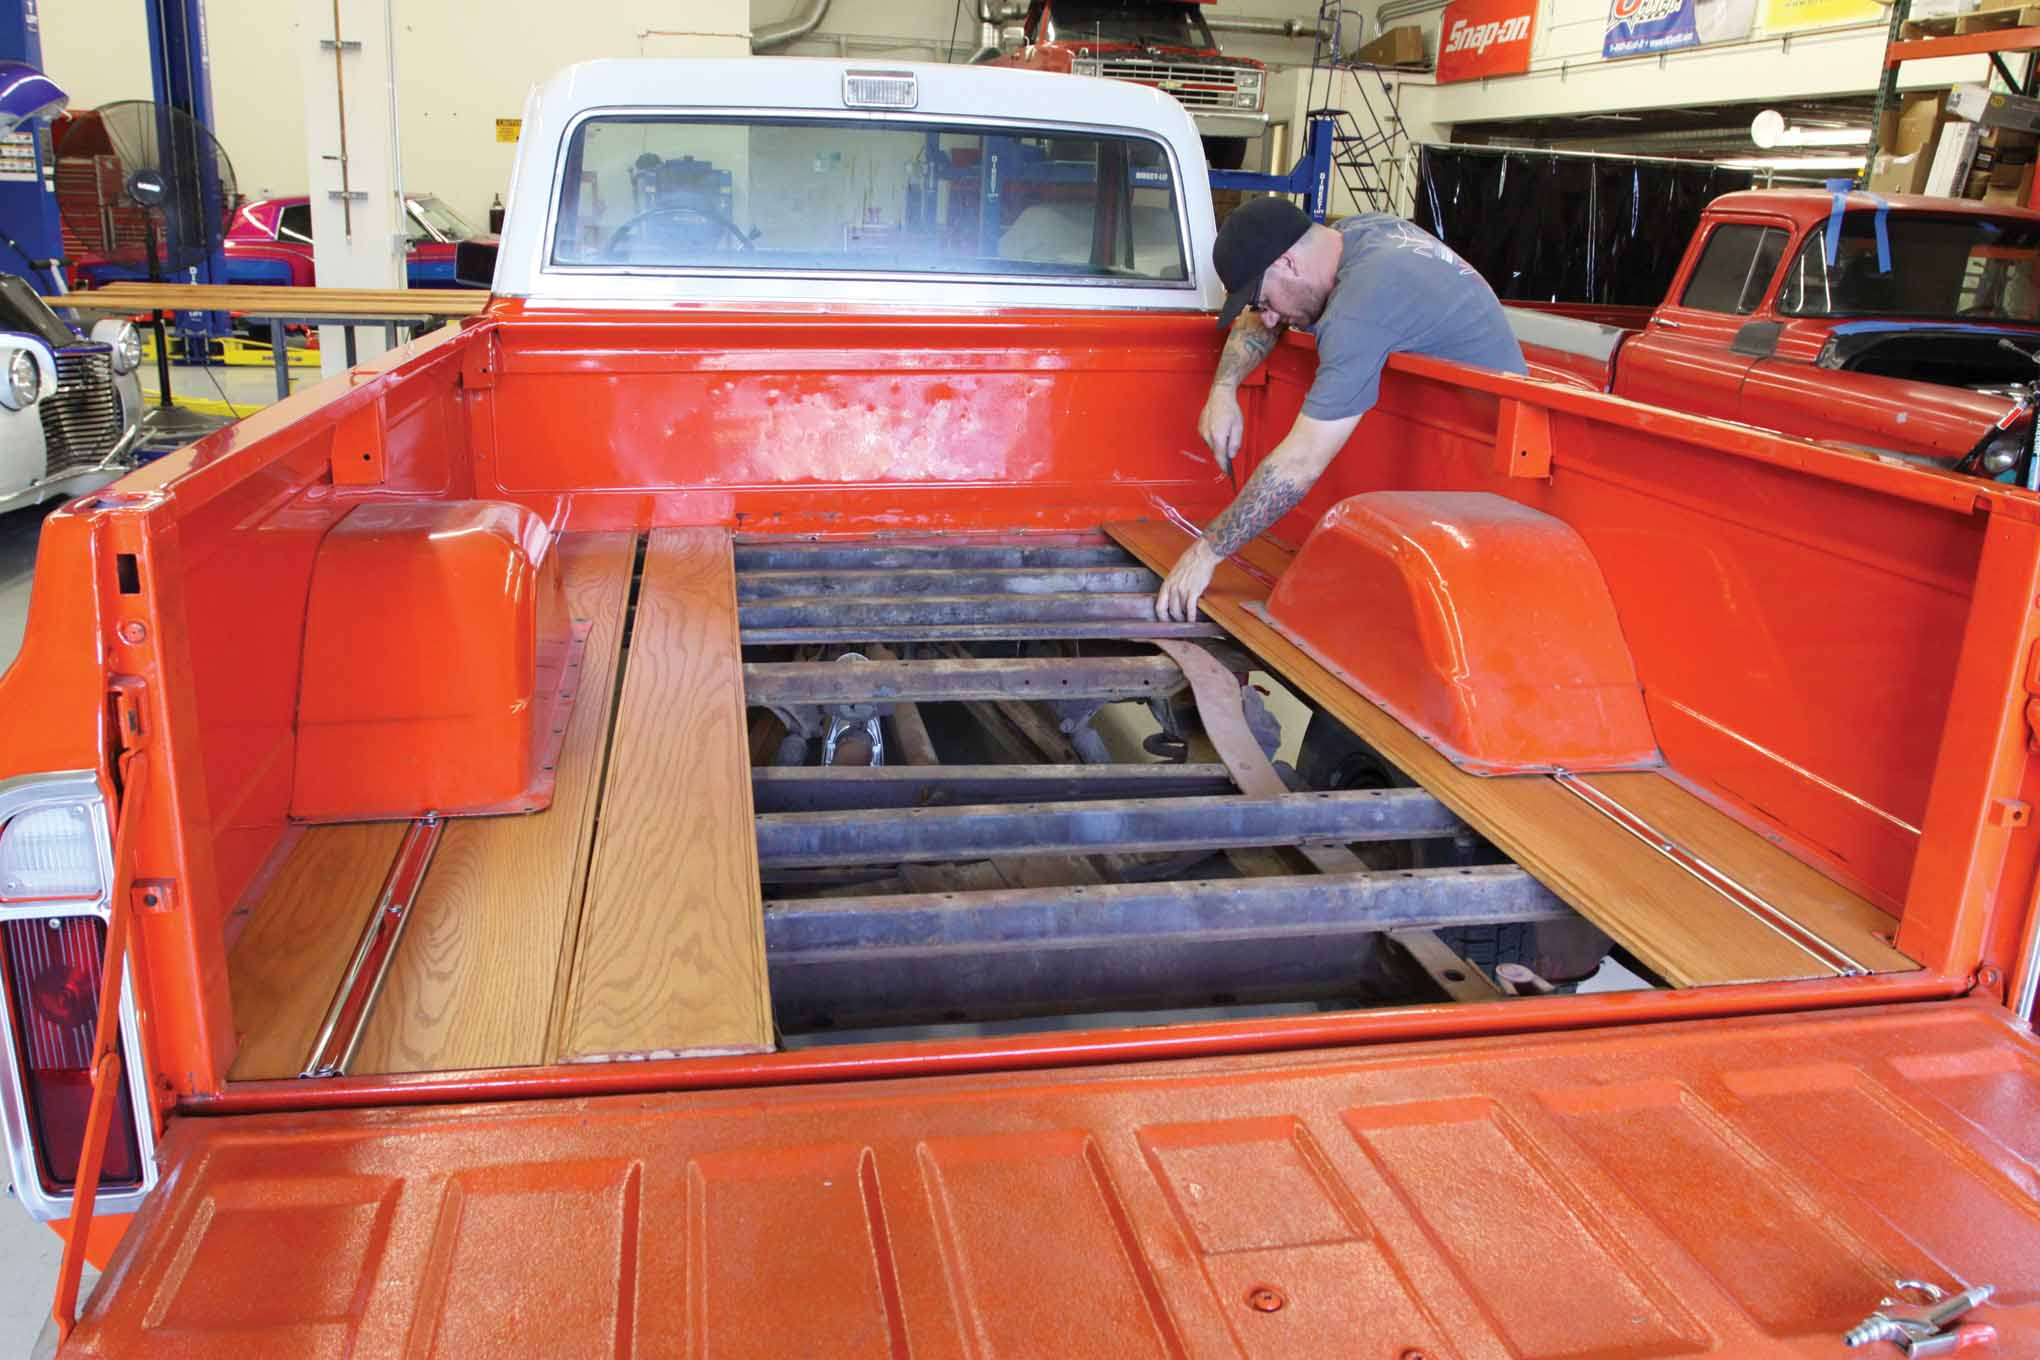 There are four bed mounts: two at the front and two at the rear underneath the third plank on each side.